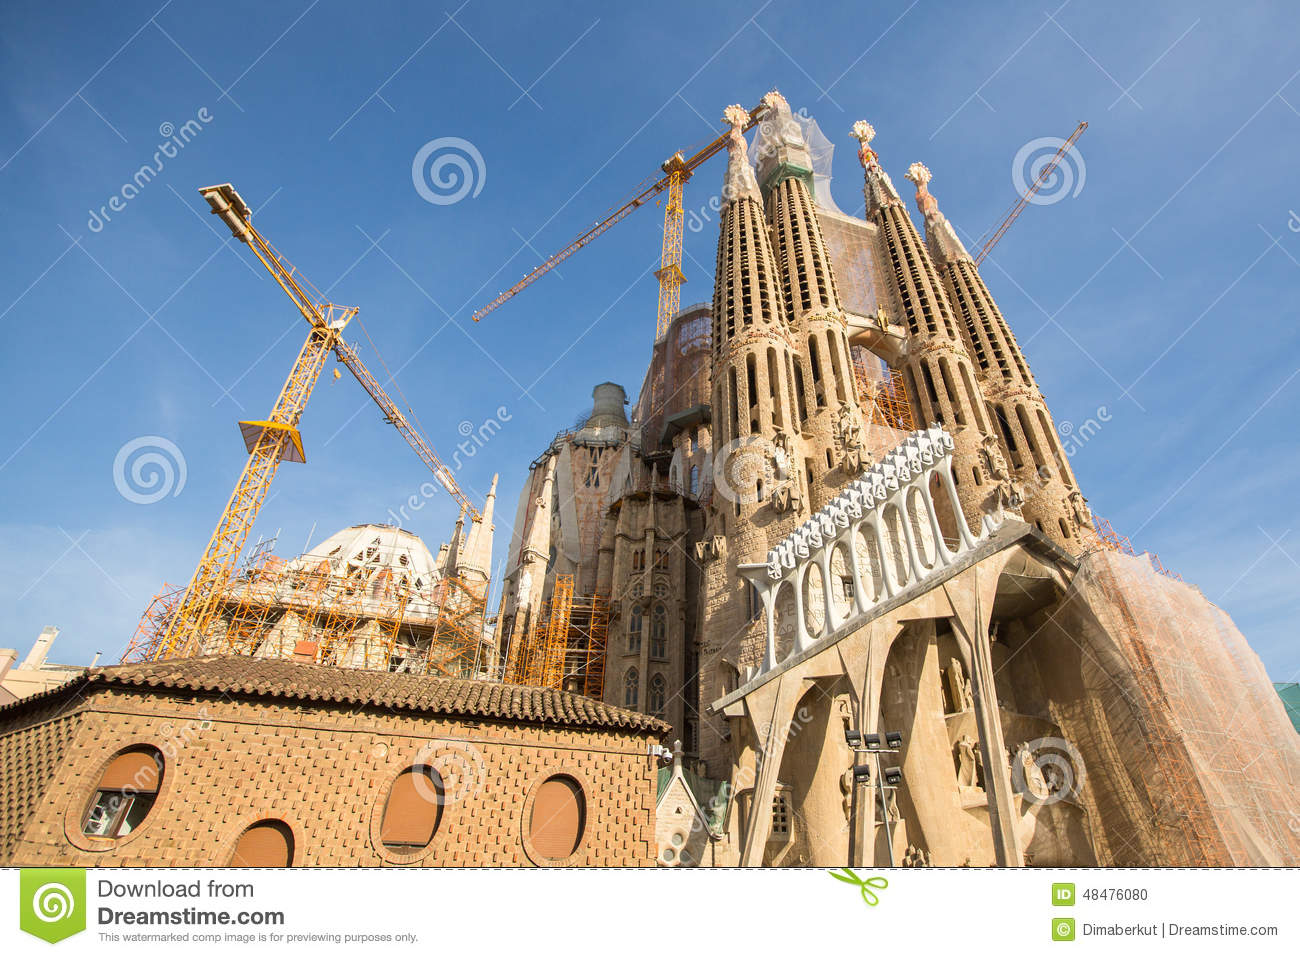 la sagrada familia the impressive cathedral designed by. Black Bedroom Furniture Sets. Home Design Ideas